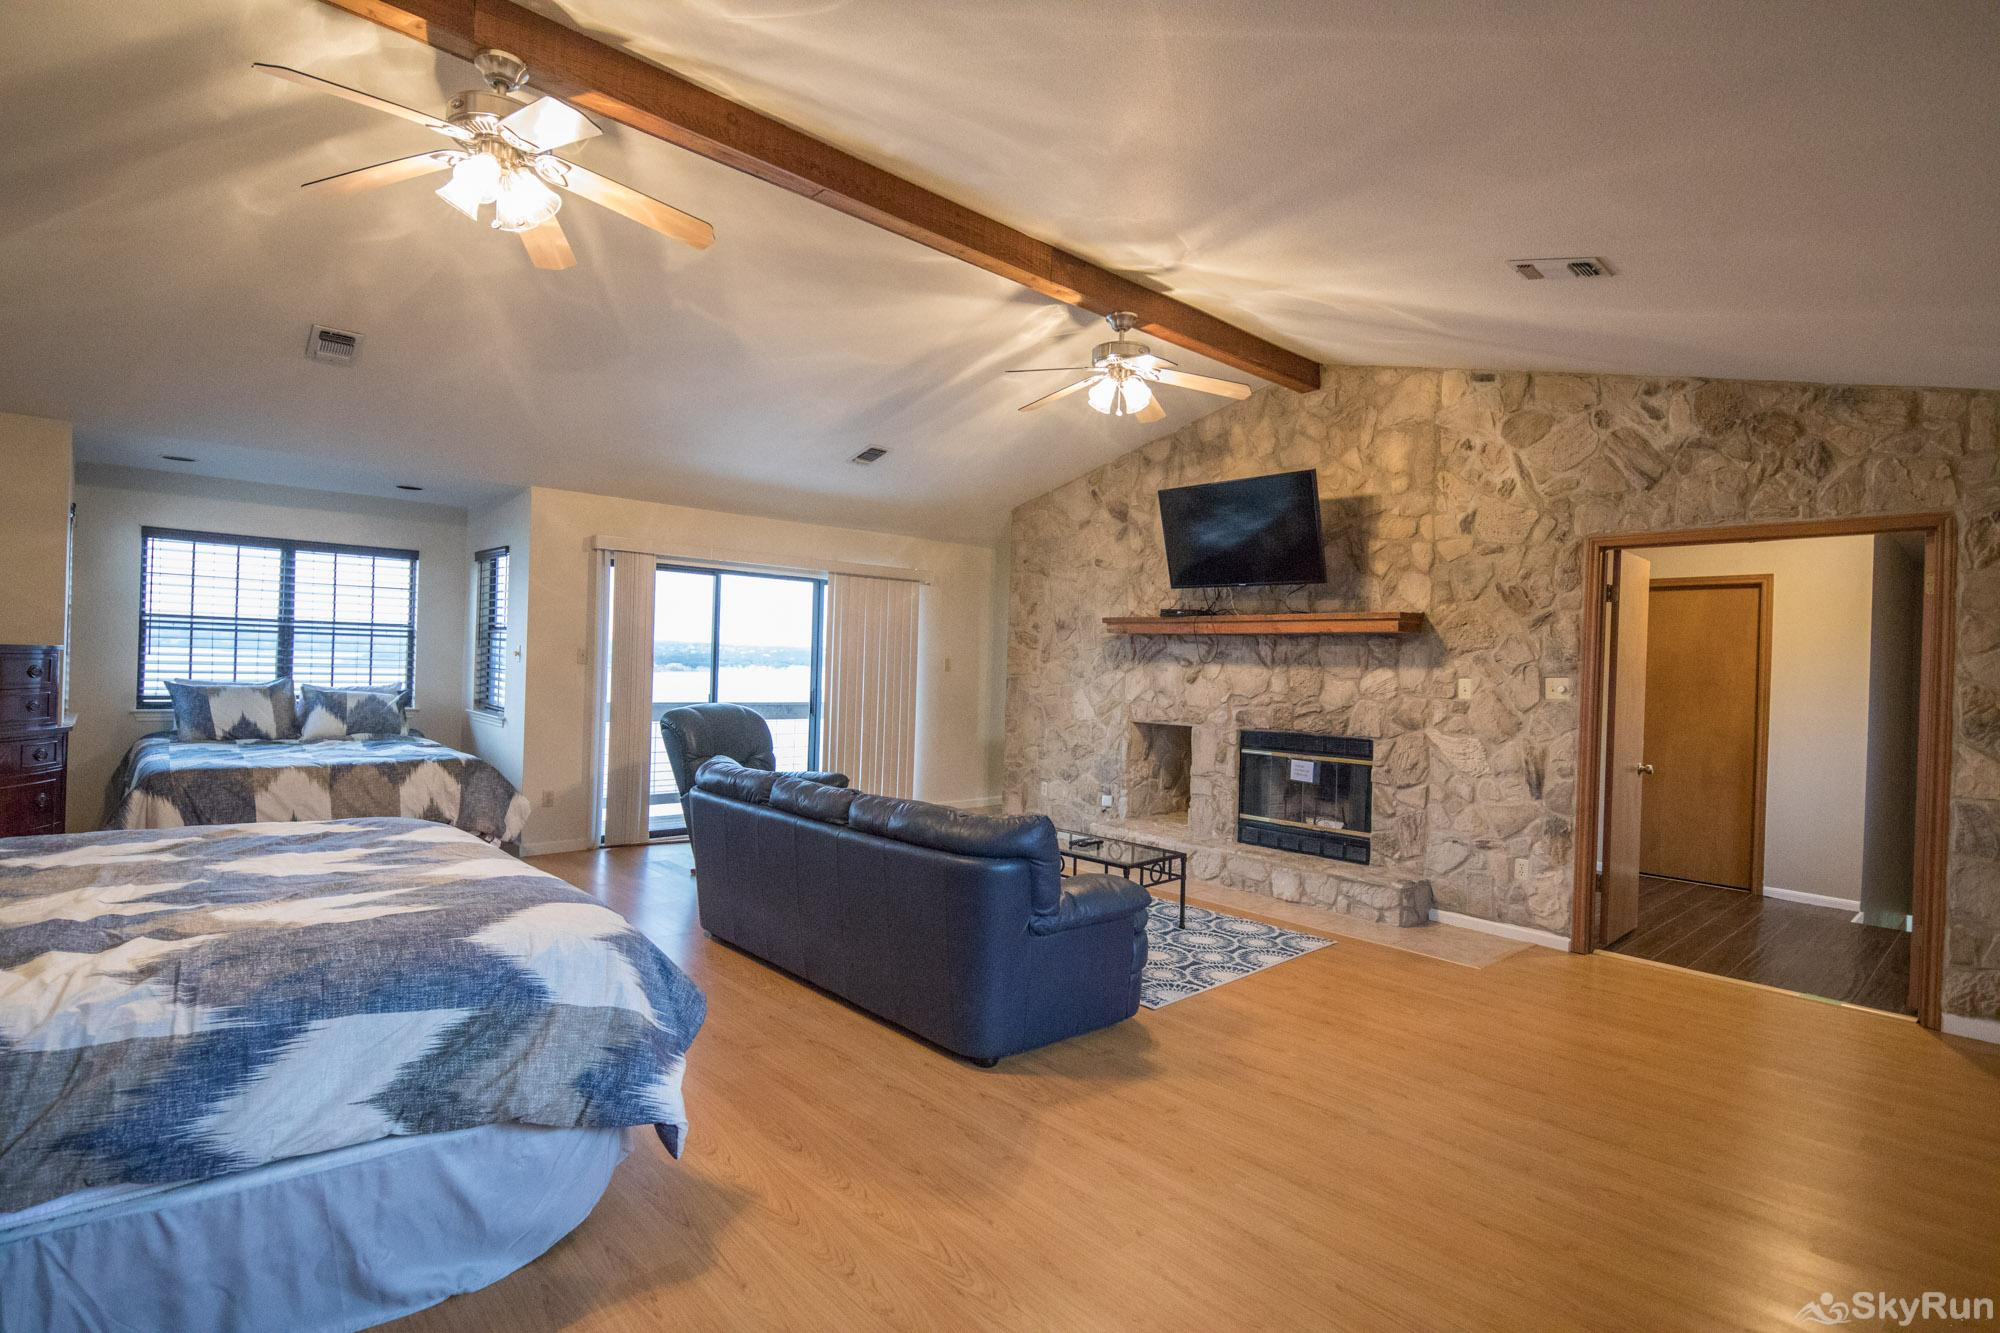 WATER'S EDGE RETREAT Master bedroom, cont.